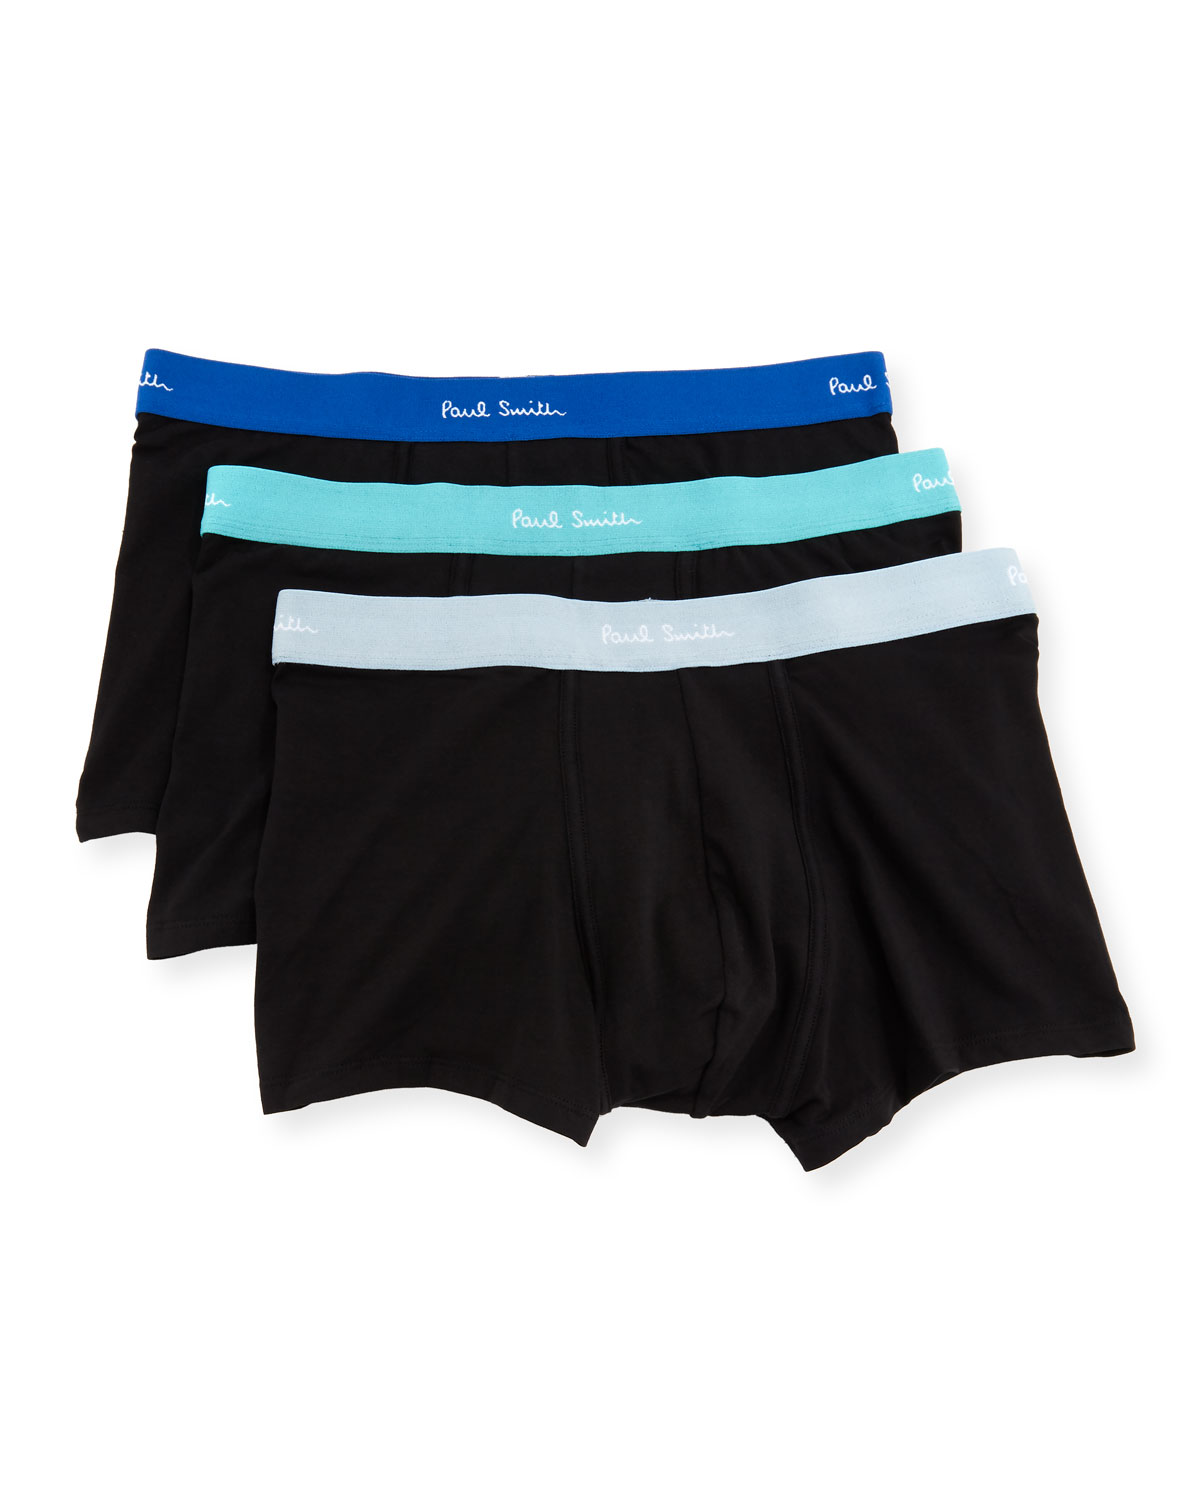 Men's 3-Pack Stretch Trunk Boxer Briefs